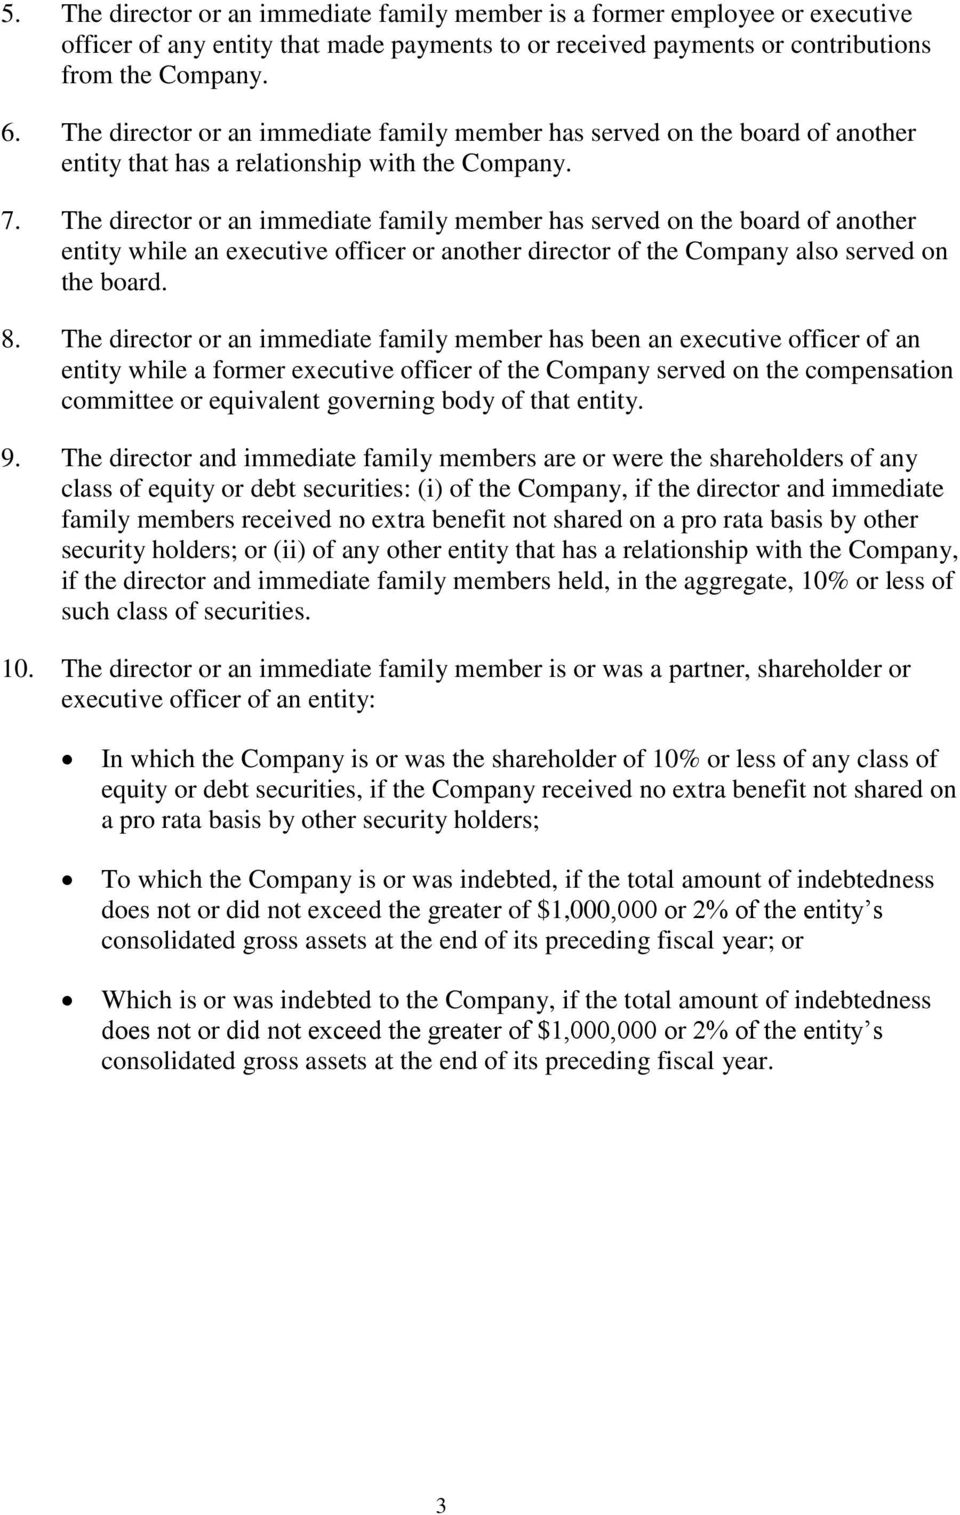 The director or an immediate family member has served on the board of another entity while an executive officer or another director of the Company also served on the board. 8.